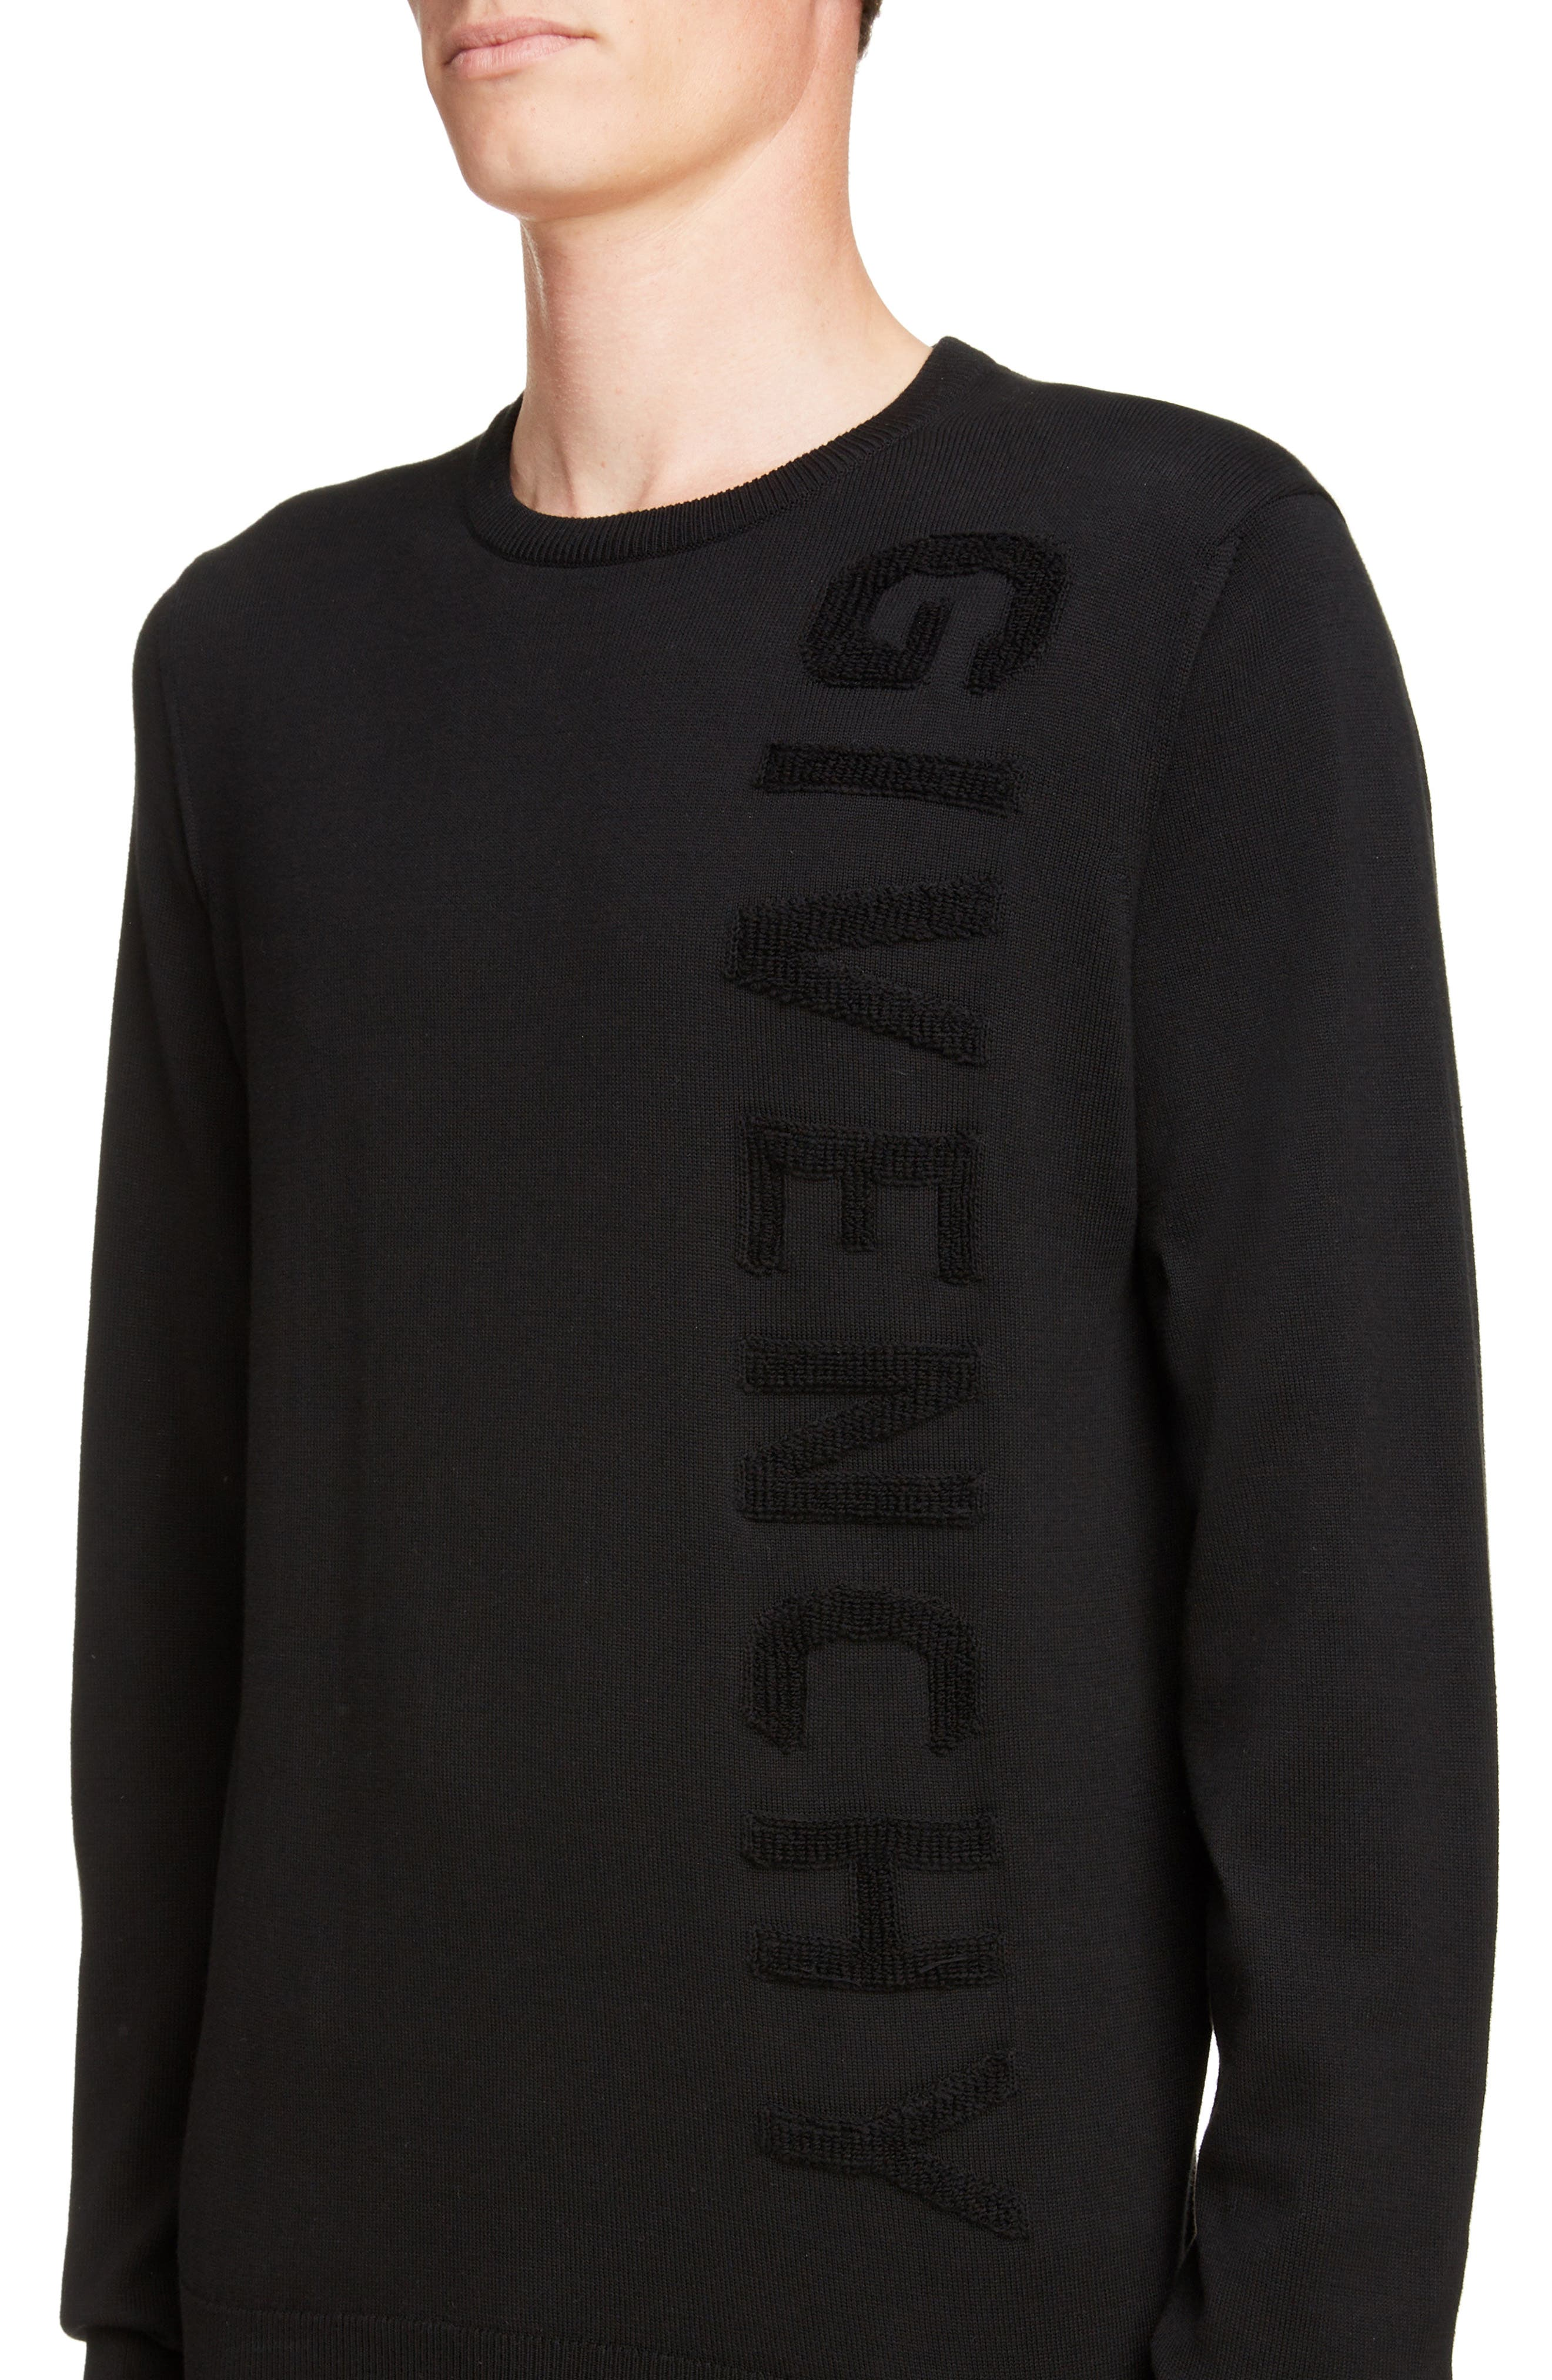 GIVENCHY,                             Tonal Vertical Logo Sweater,                             Alternate thumbnail 4, color,                             BLACK